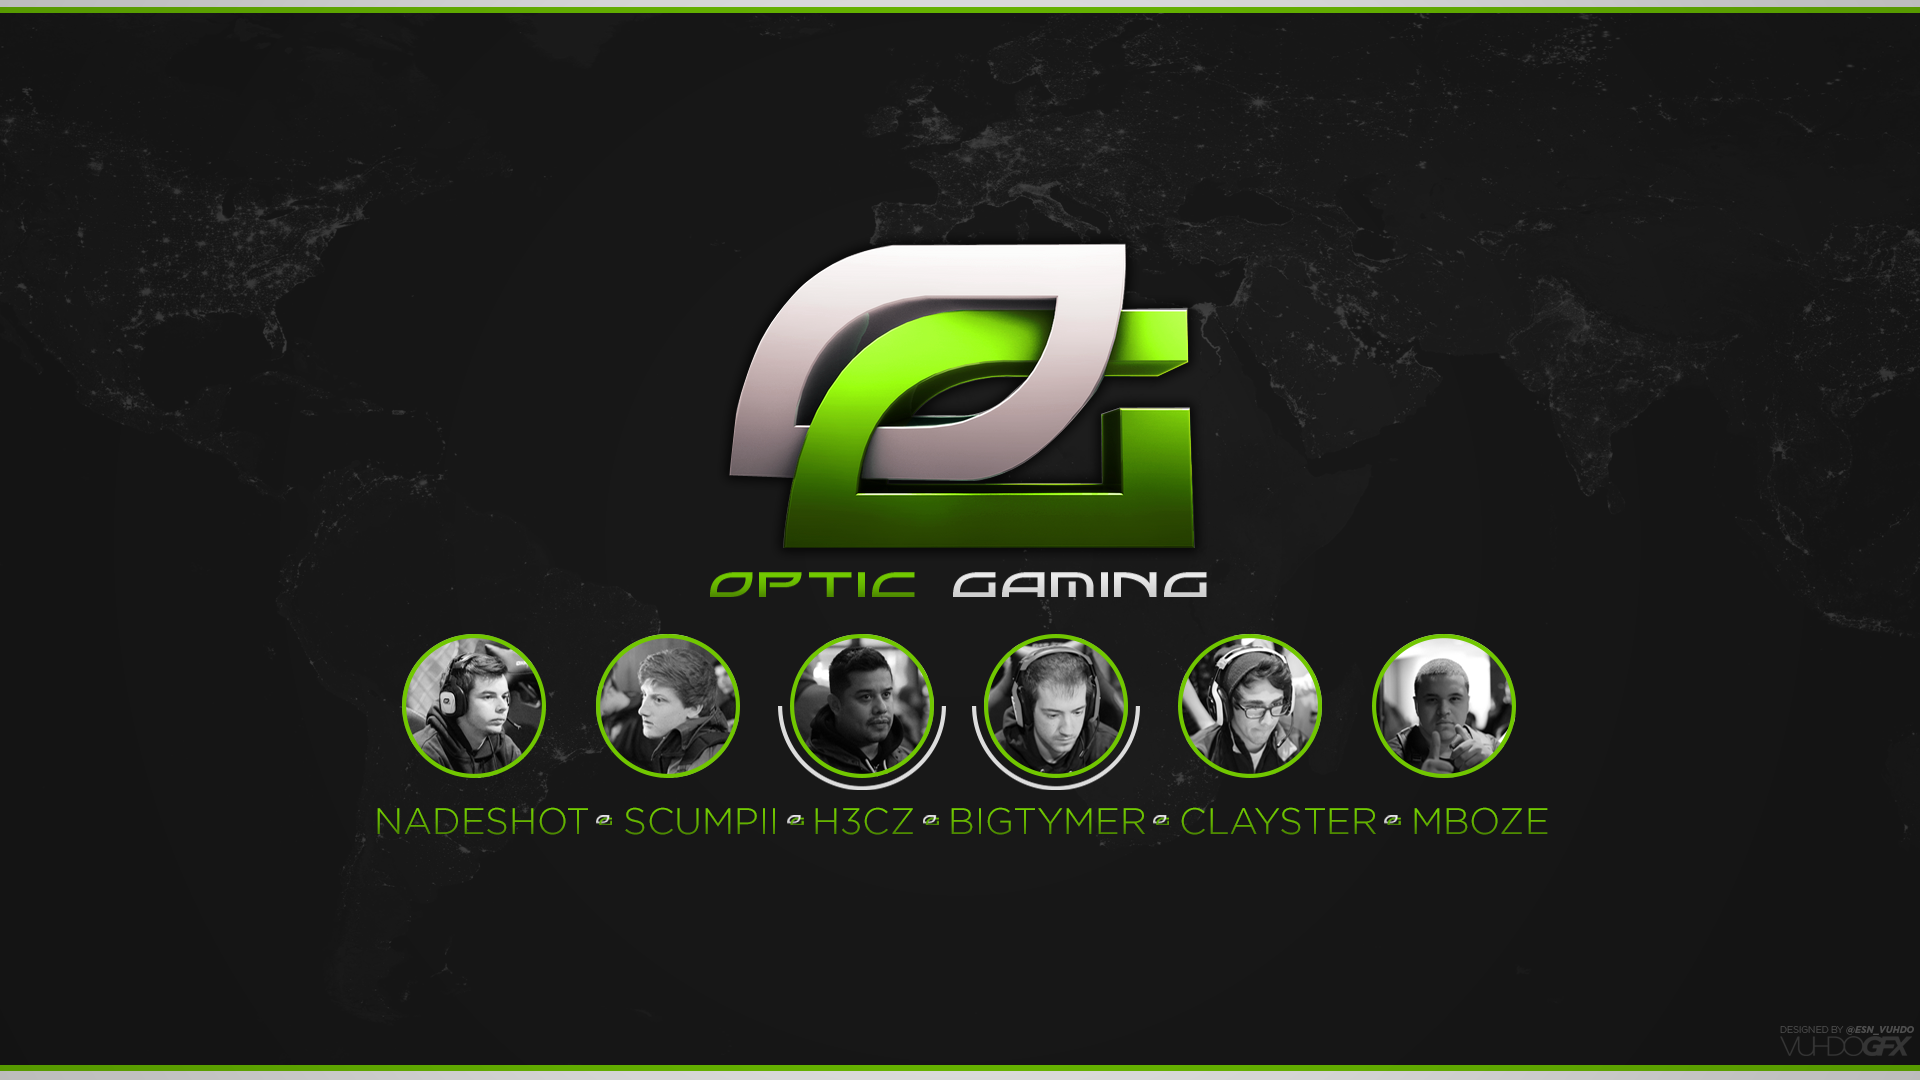 Optic Gaming Logo Wallpaper Hd Desktop backgrounds   vuhdo 1920x1080